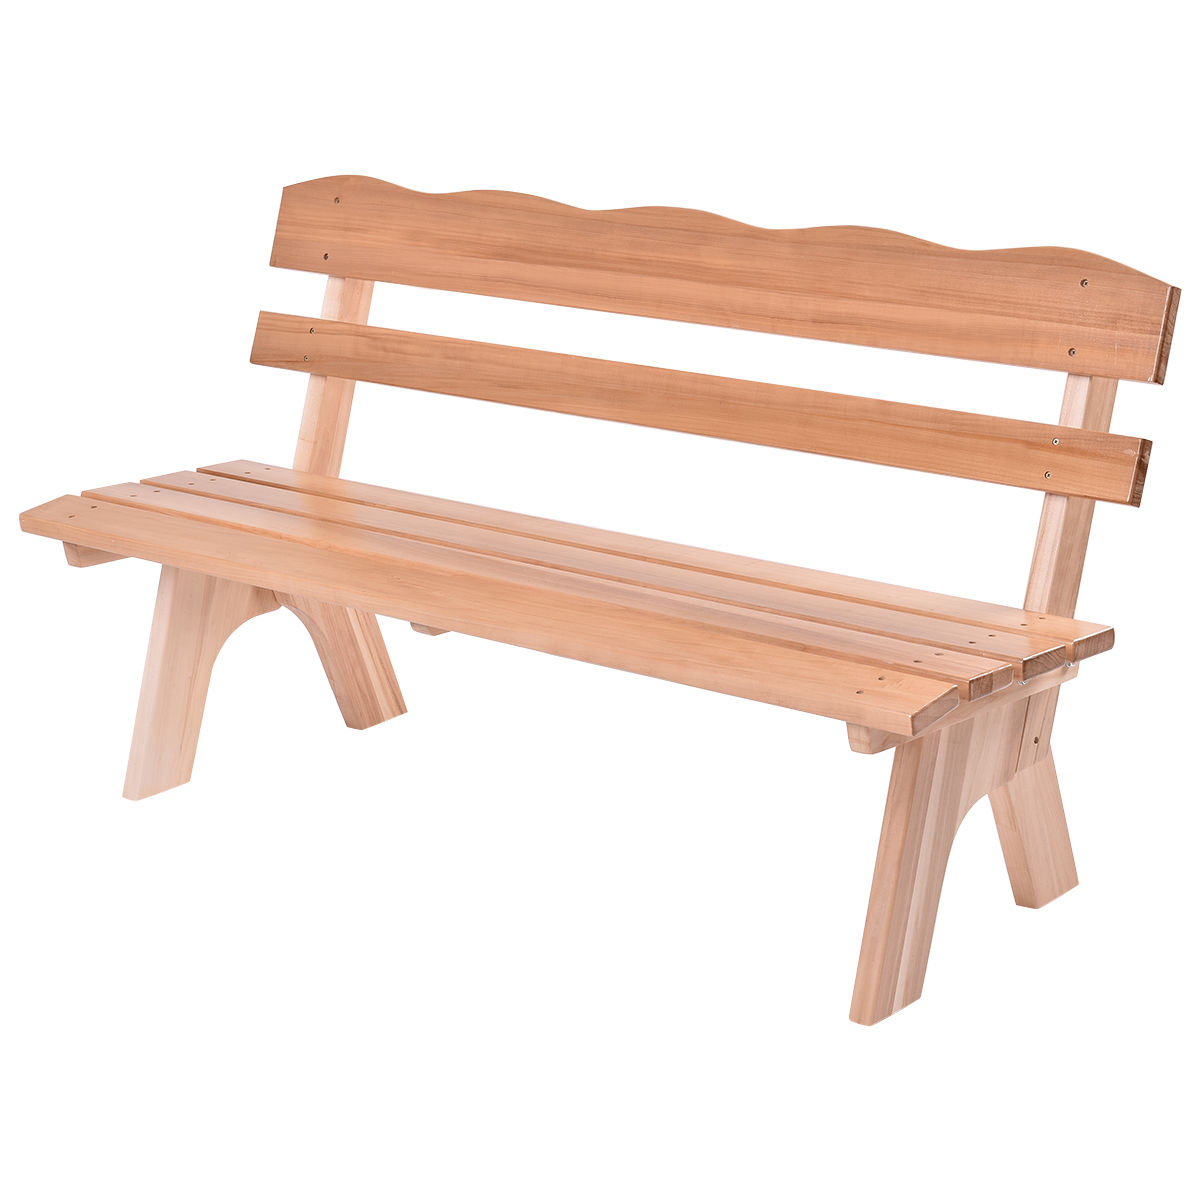 Giantex 5 Ft 3 Seats Outdoor Wooden Garden Bench Chair Modern Wood